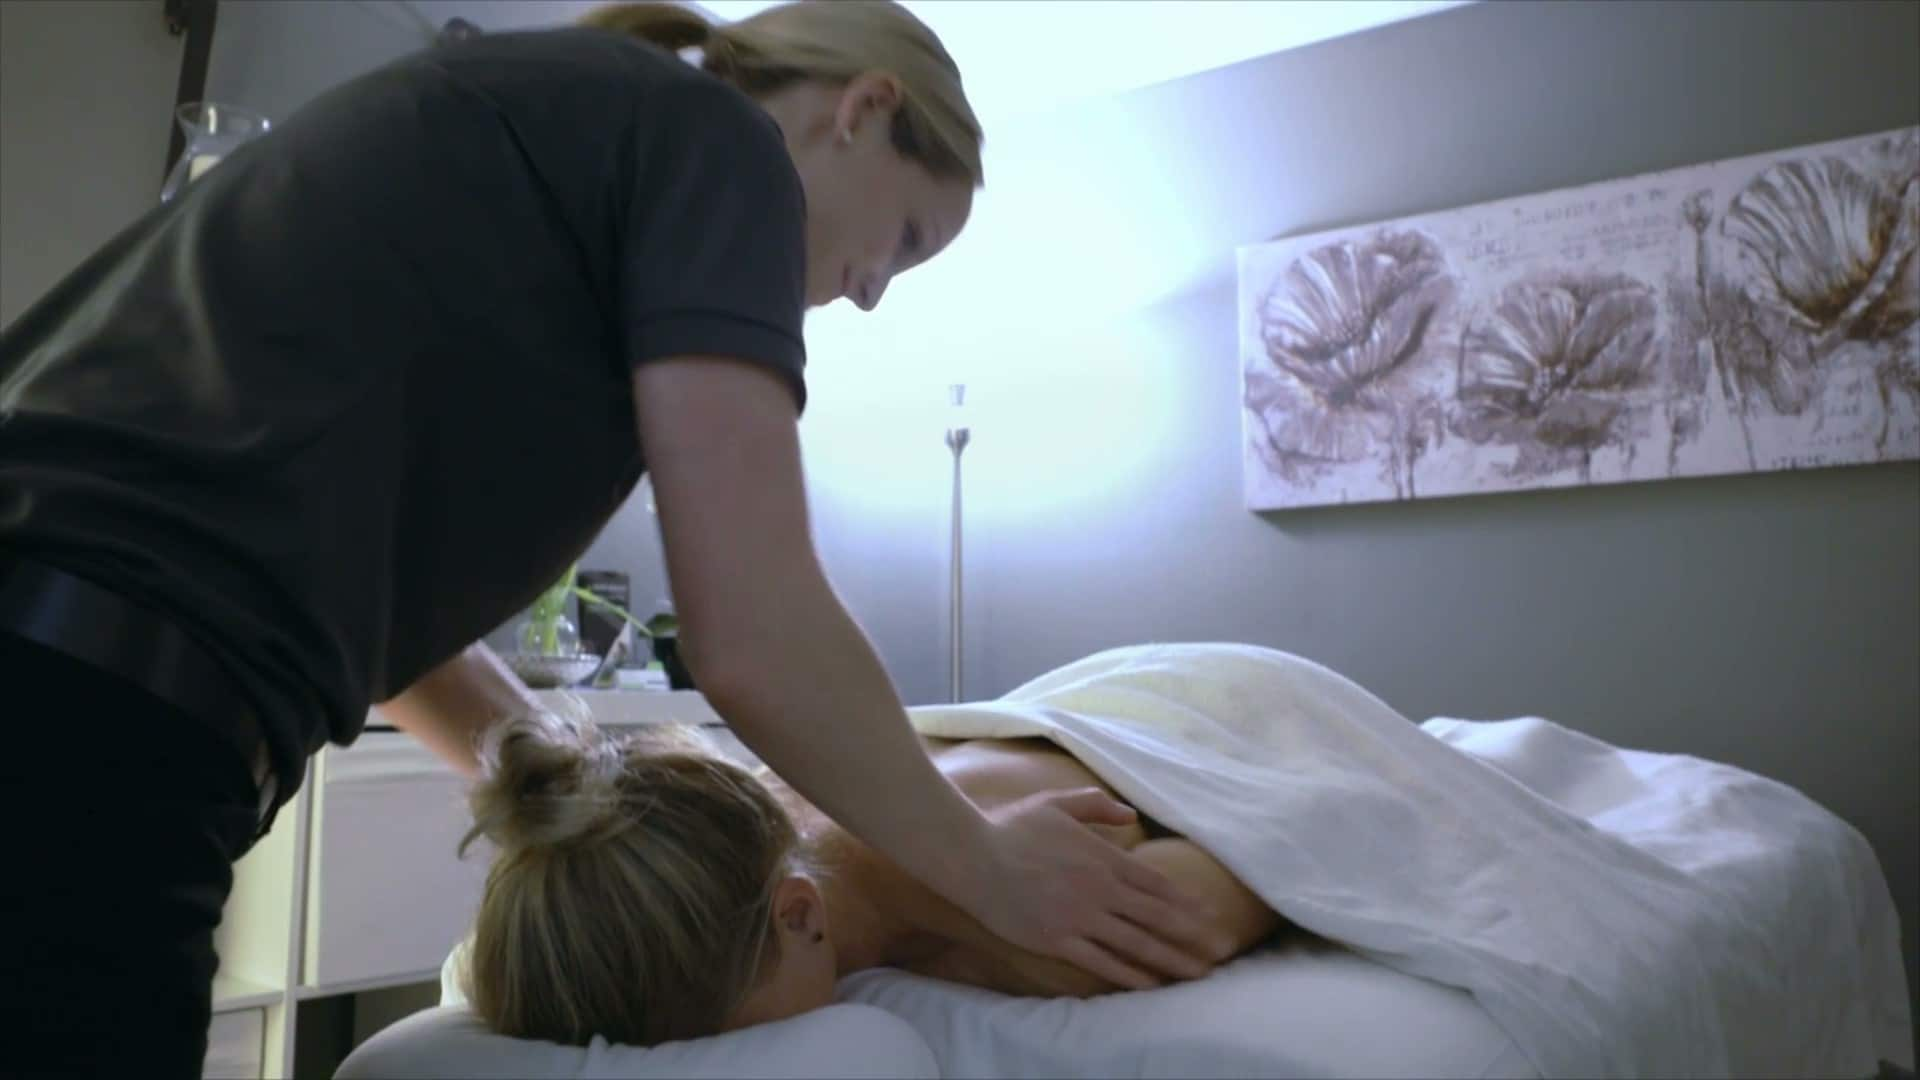 etting a massage relieves stress and muscle tension